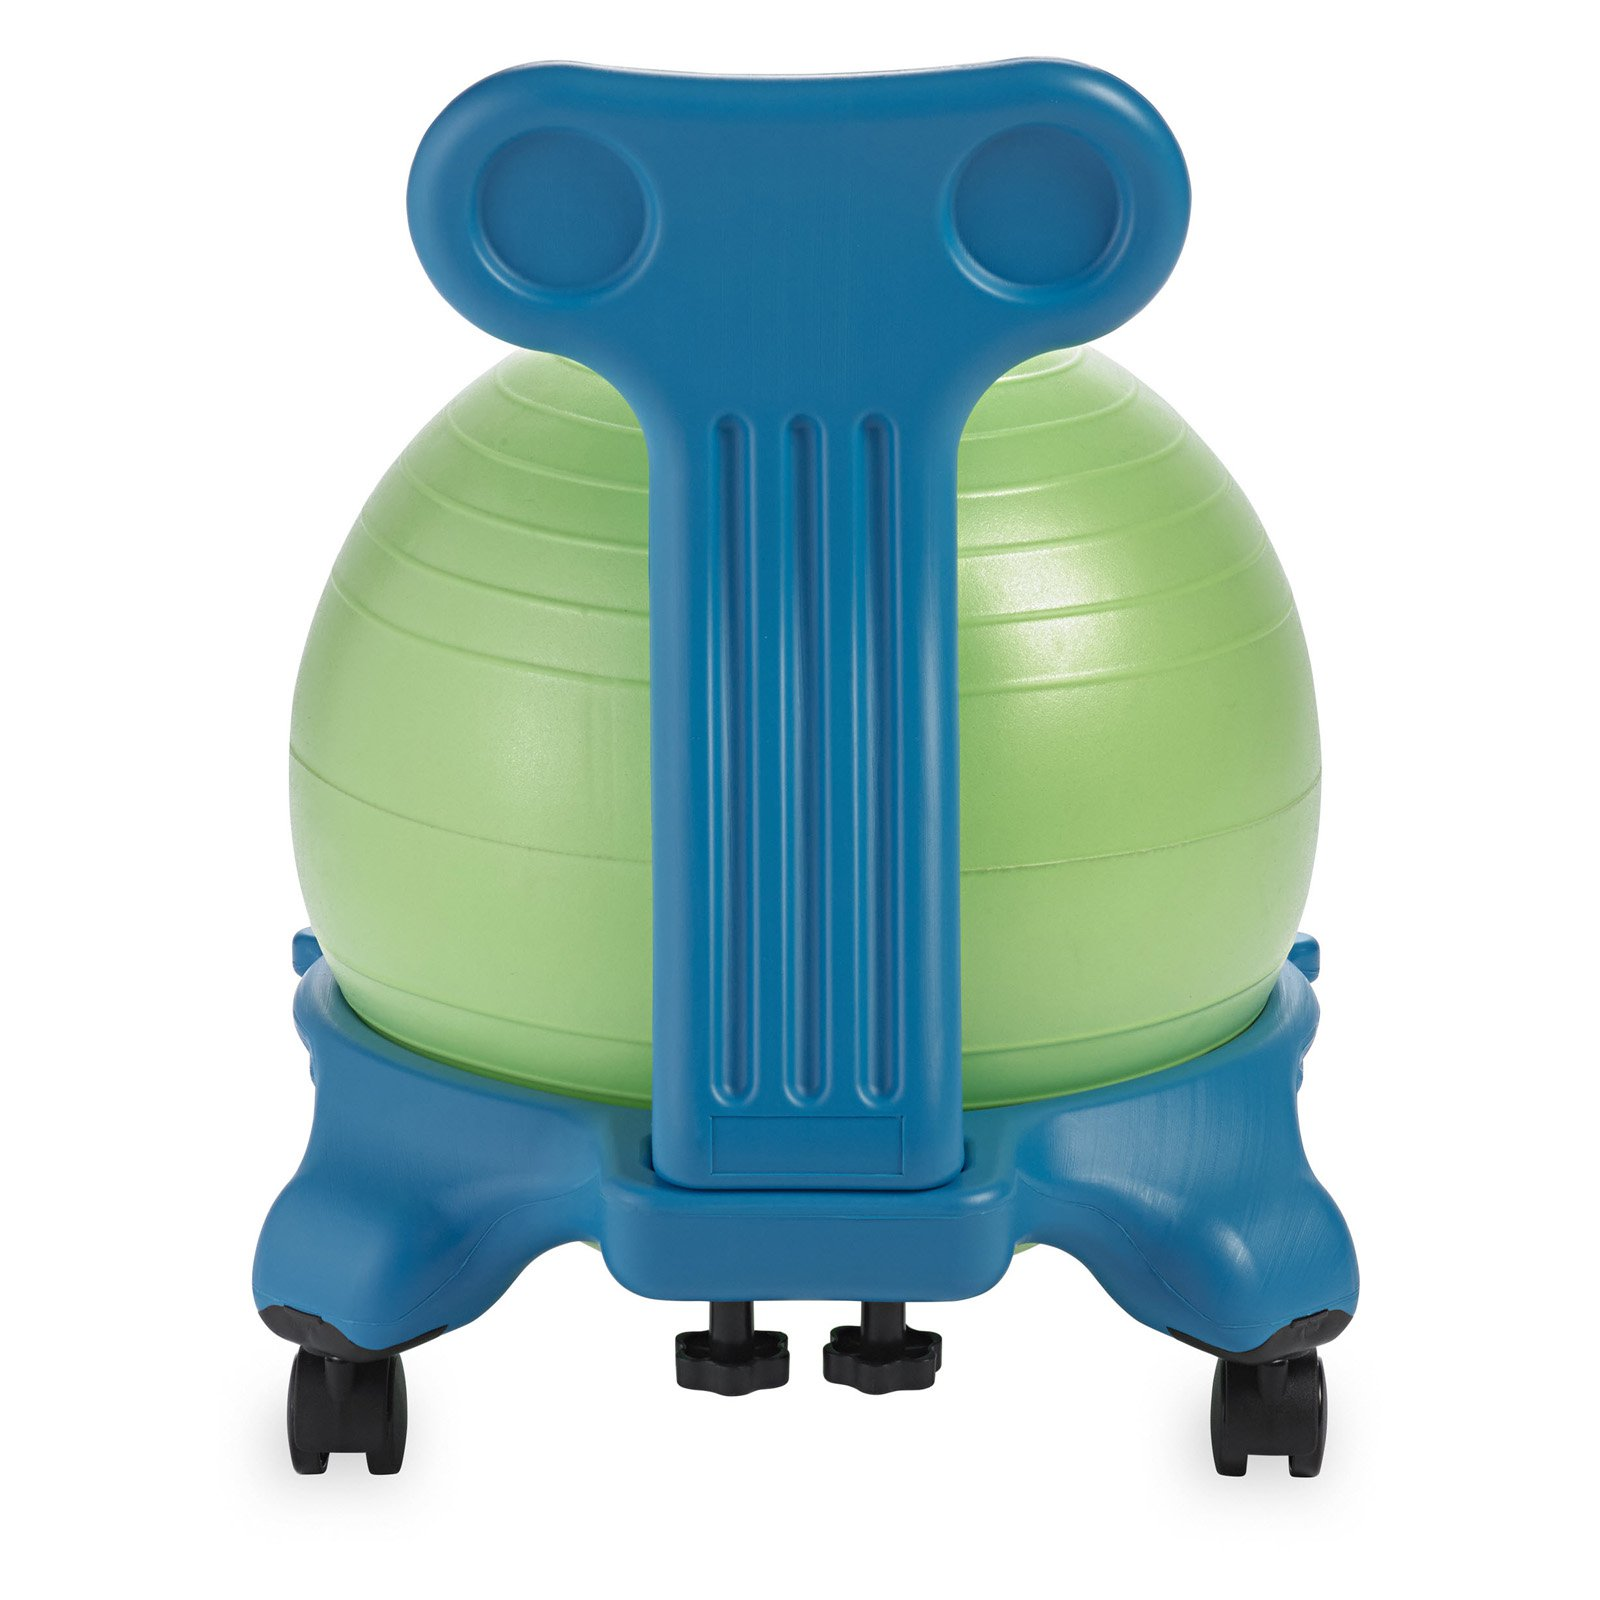 Remarkable Gaiam Kids Balance Ball Chair Purple Pink Caraccident5 Cool Chair Designs And Ideas Caraccident5Info